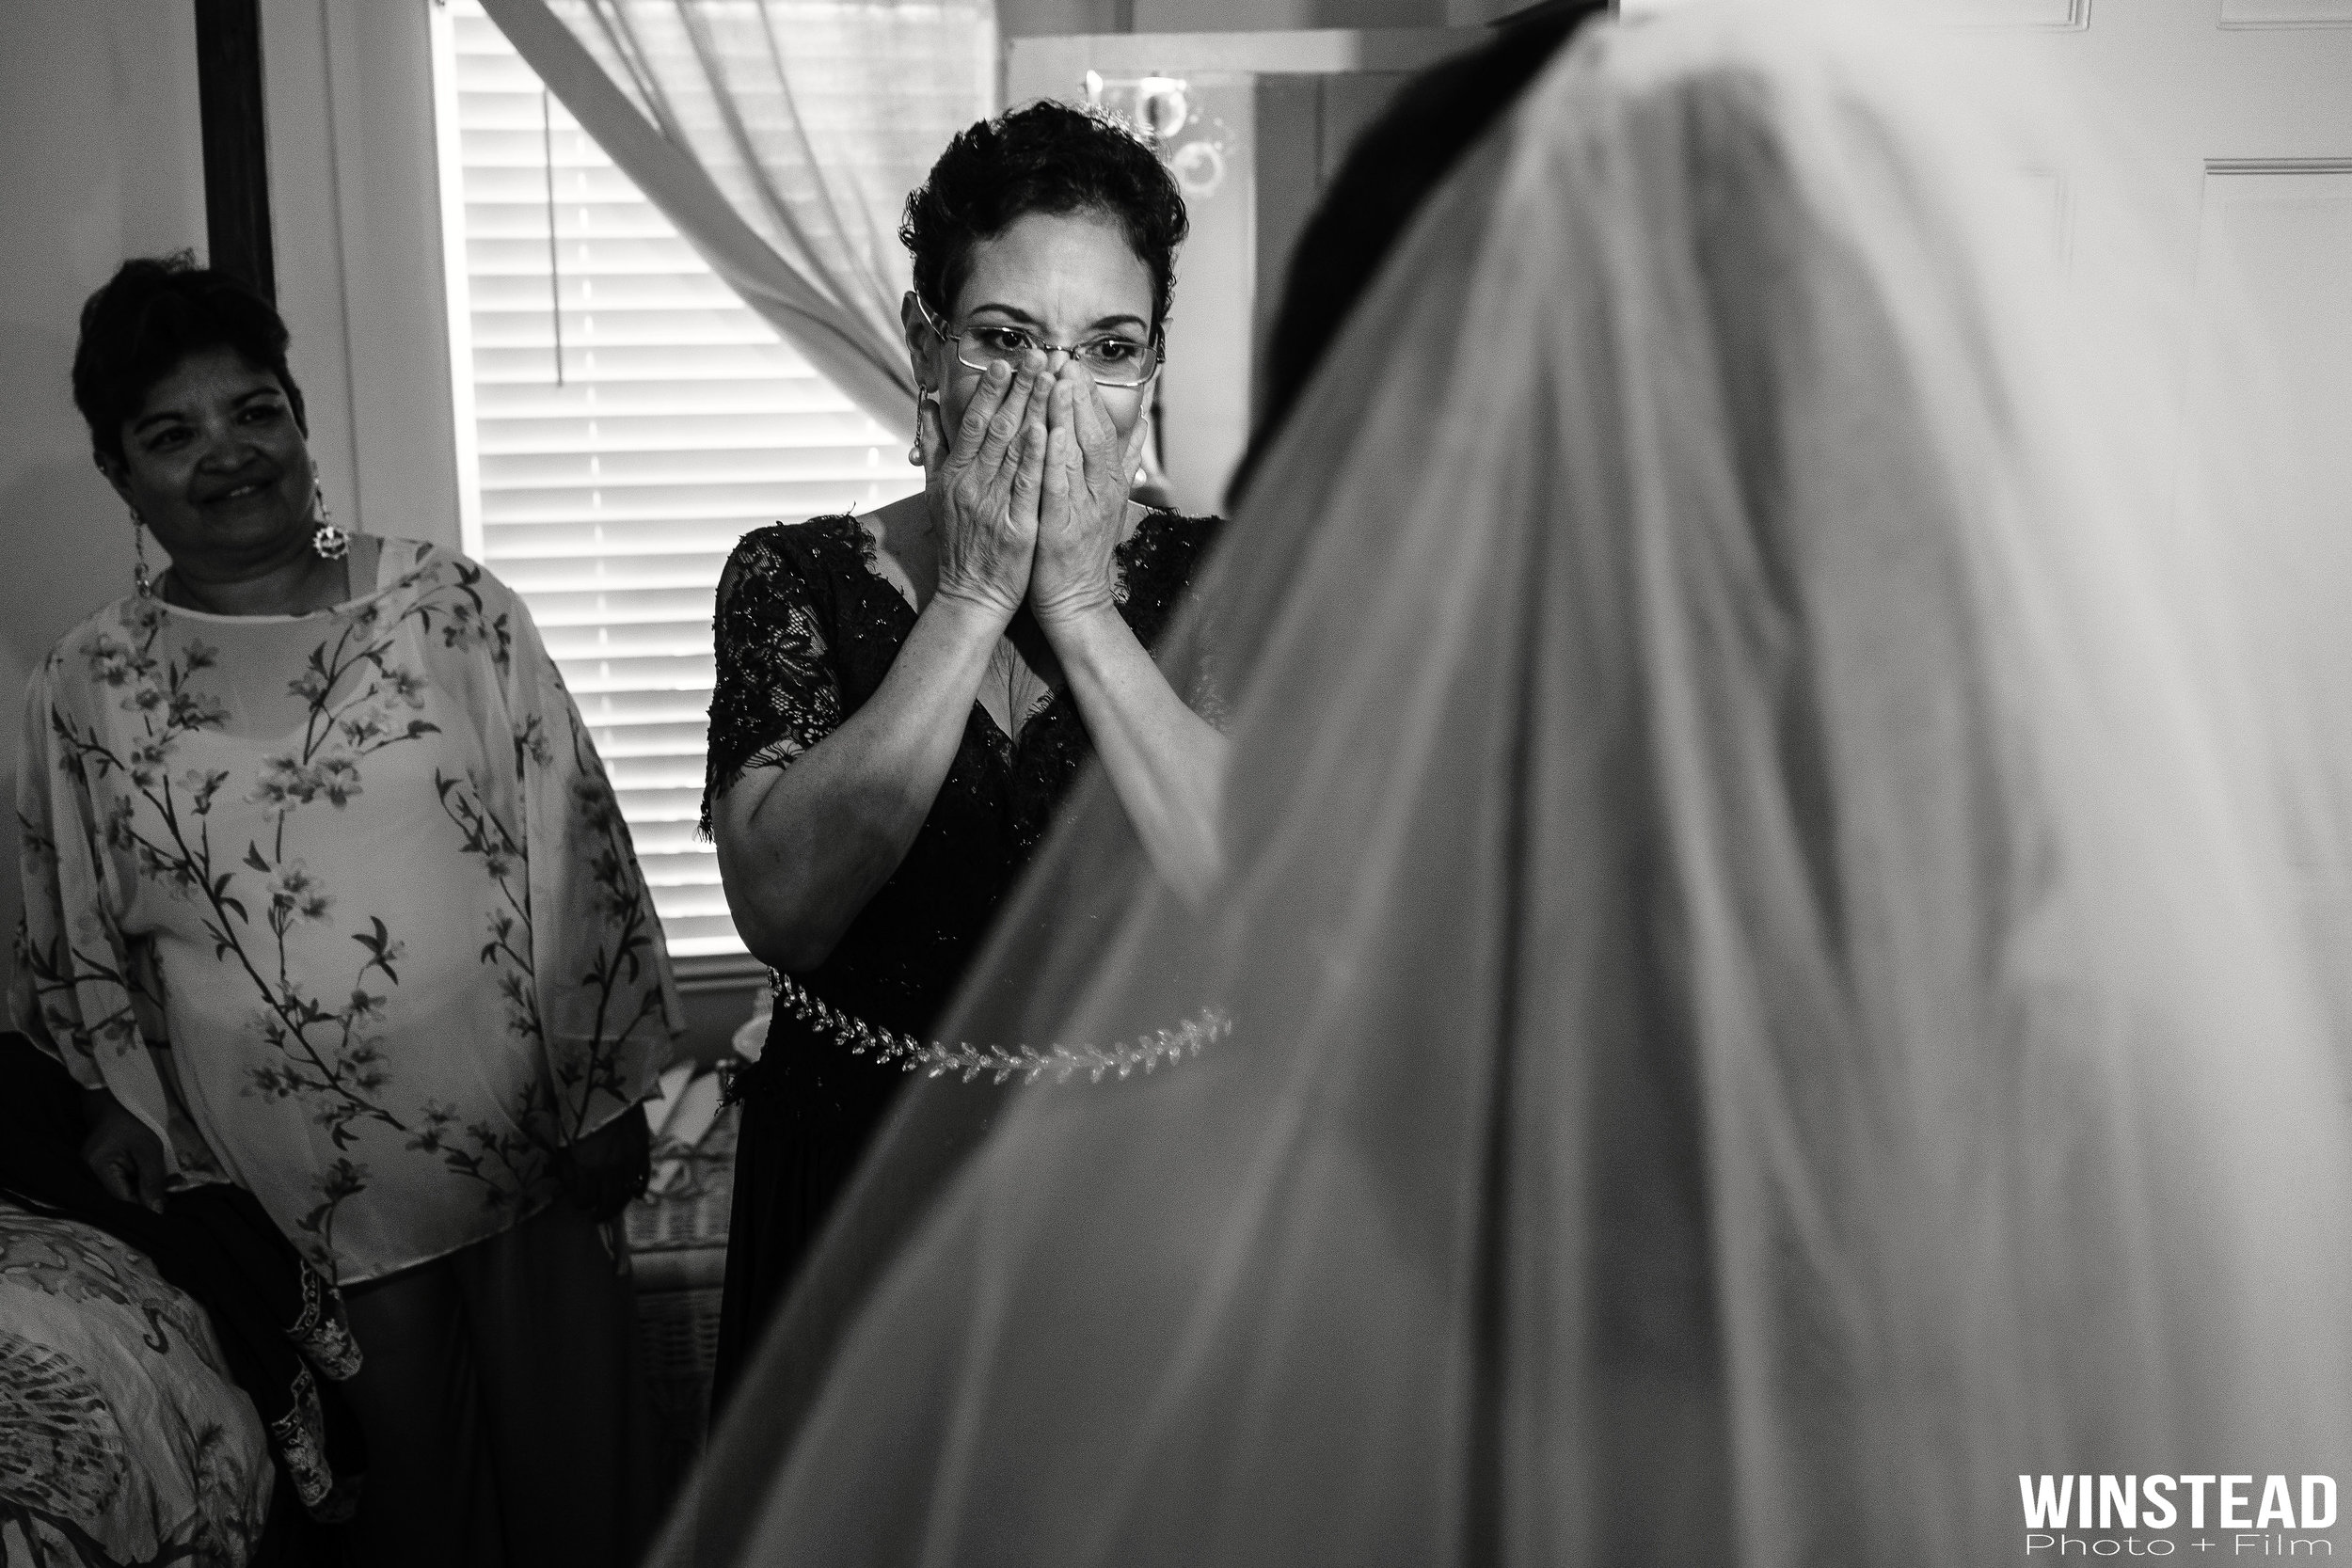 emotional-mother-moment-wedding-photographer.jpg